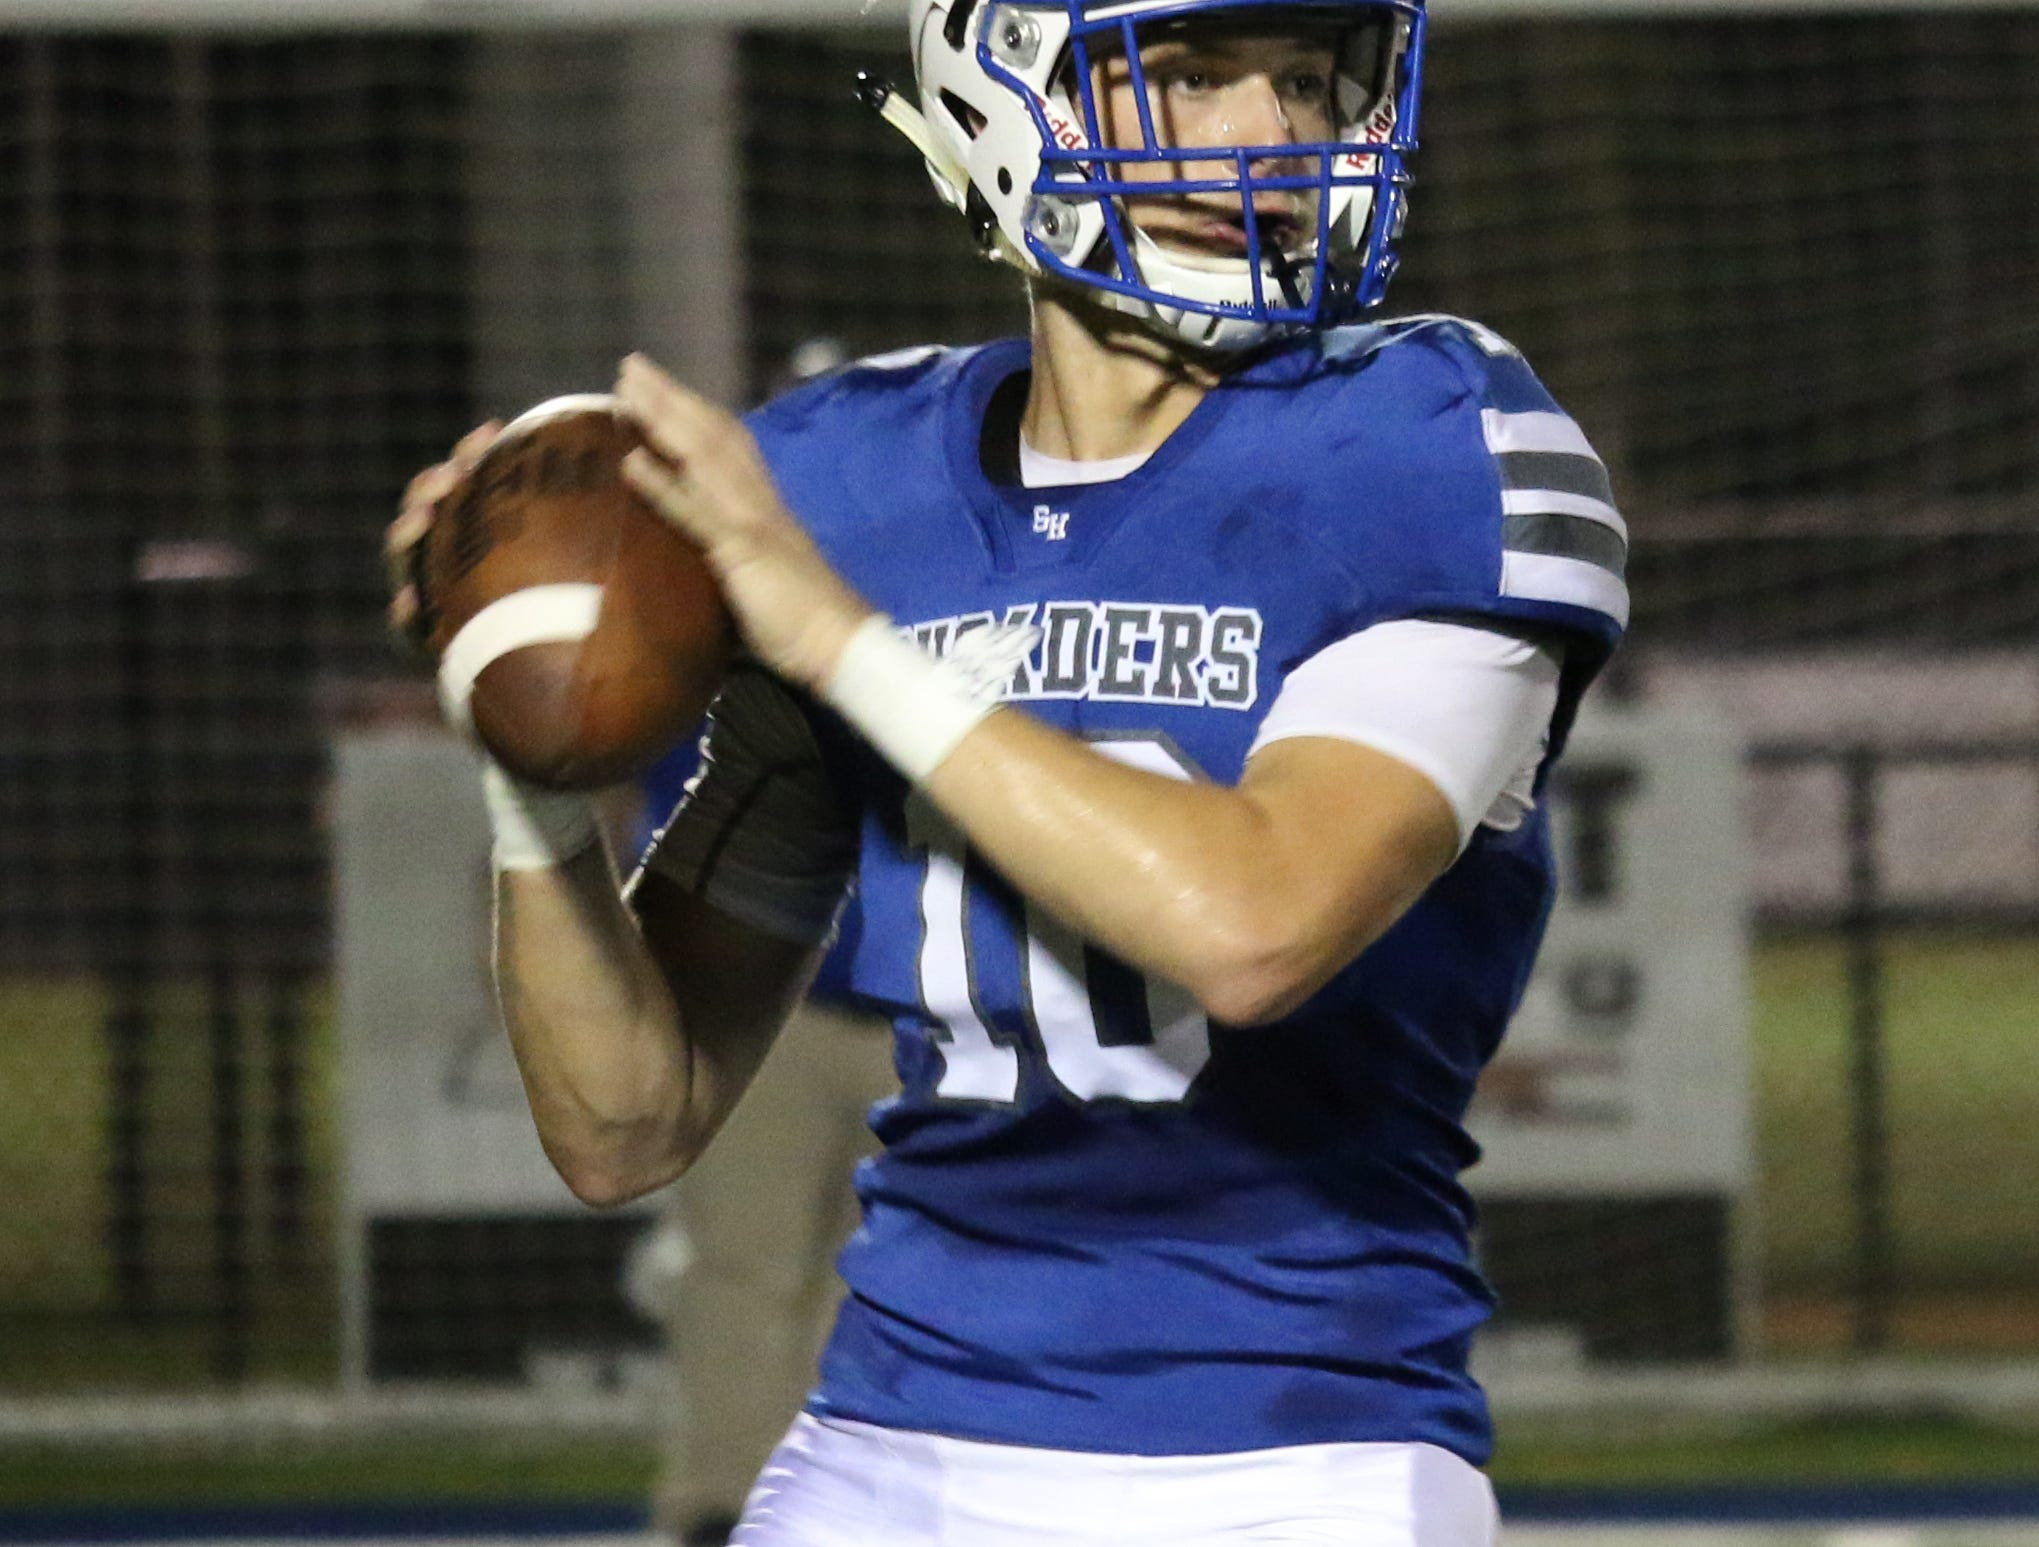 Sacred Heart's QB Zach Weatherell searches for an opening against East Marion on Friday.